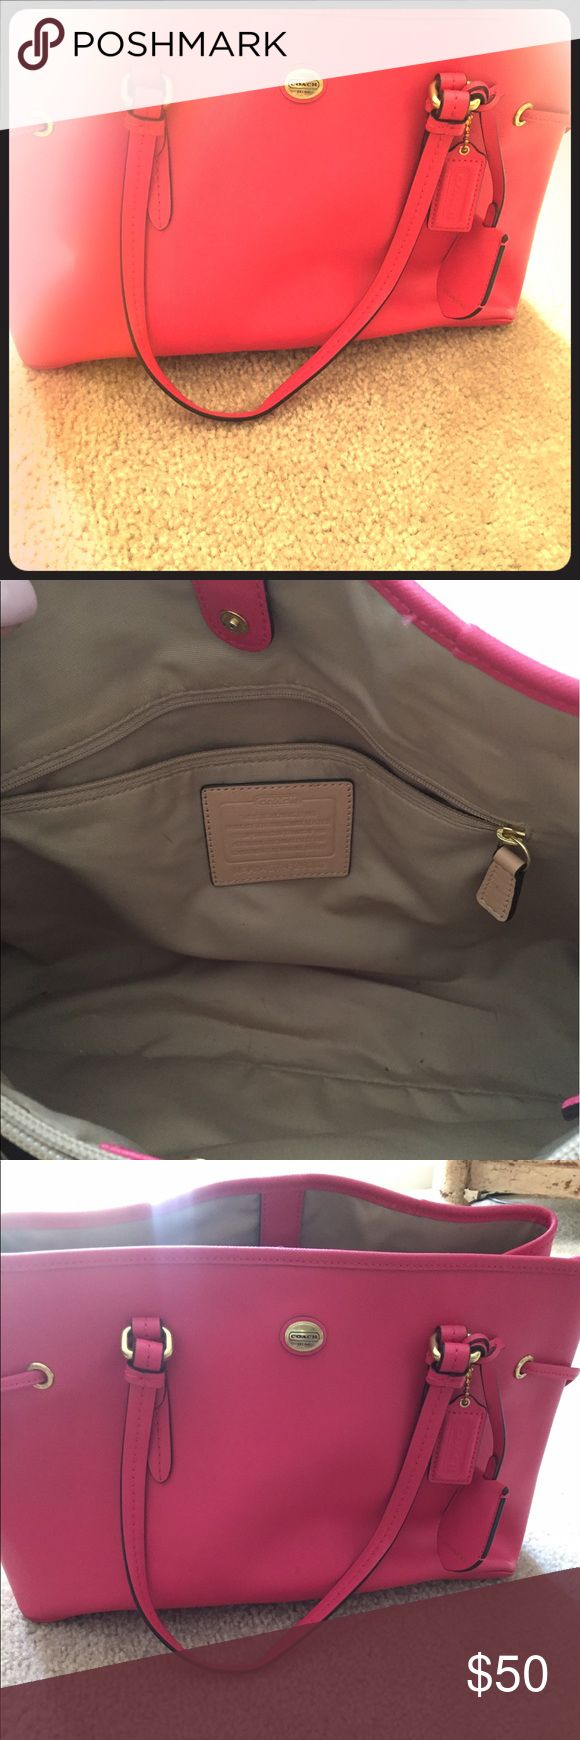 Authentic pink coach purse Beautiful, bright coach purse perfect for spring and summer! Coach Bags Shoulder Bags